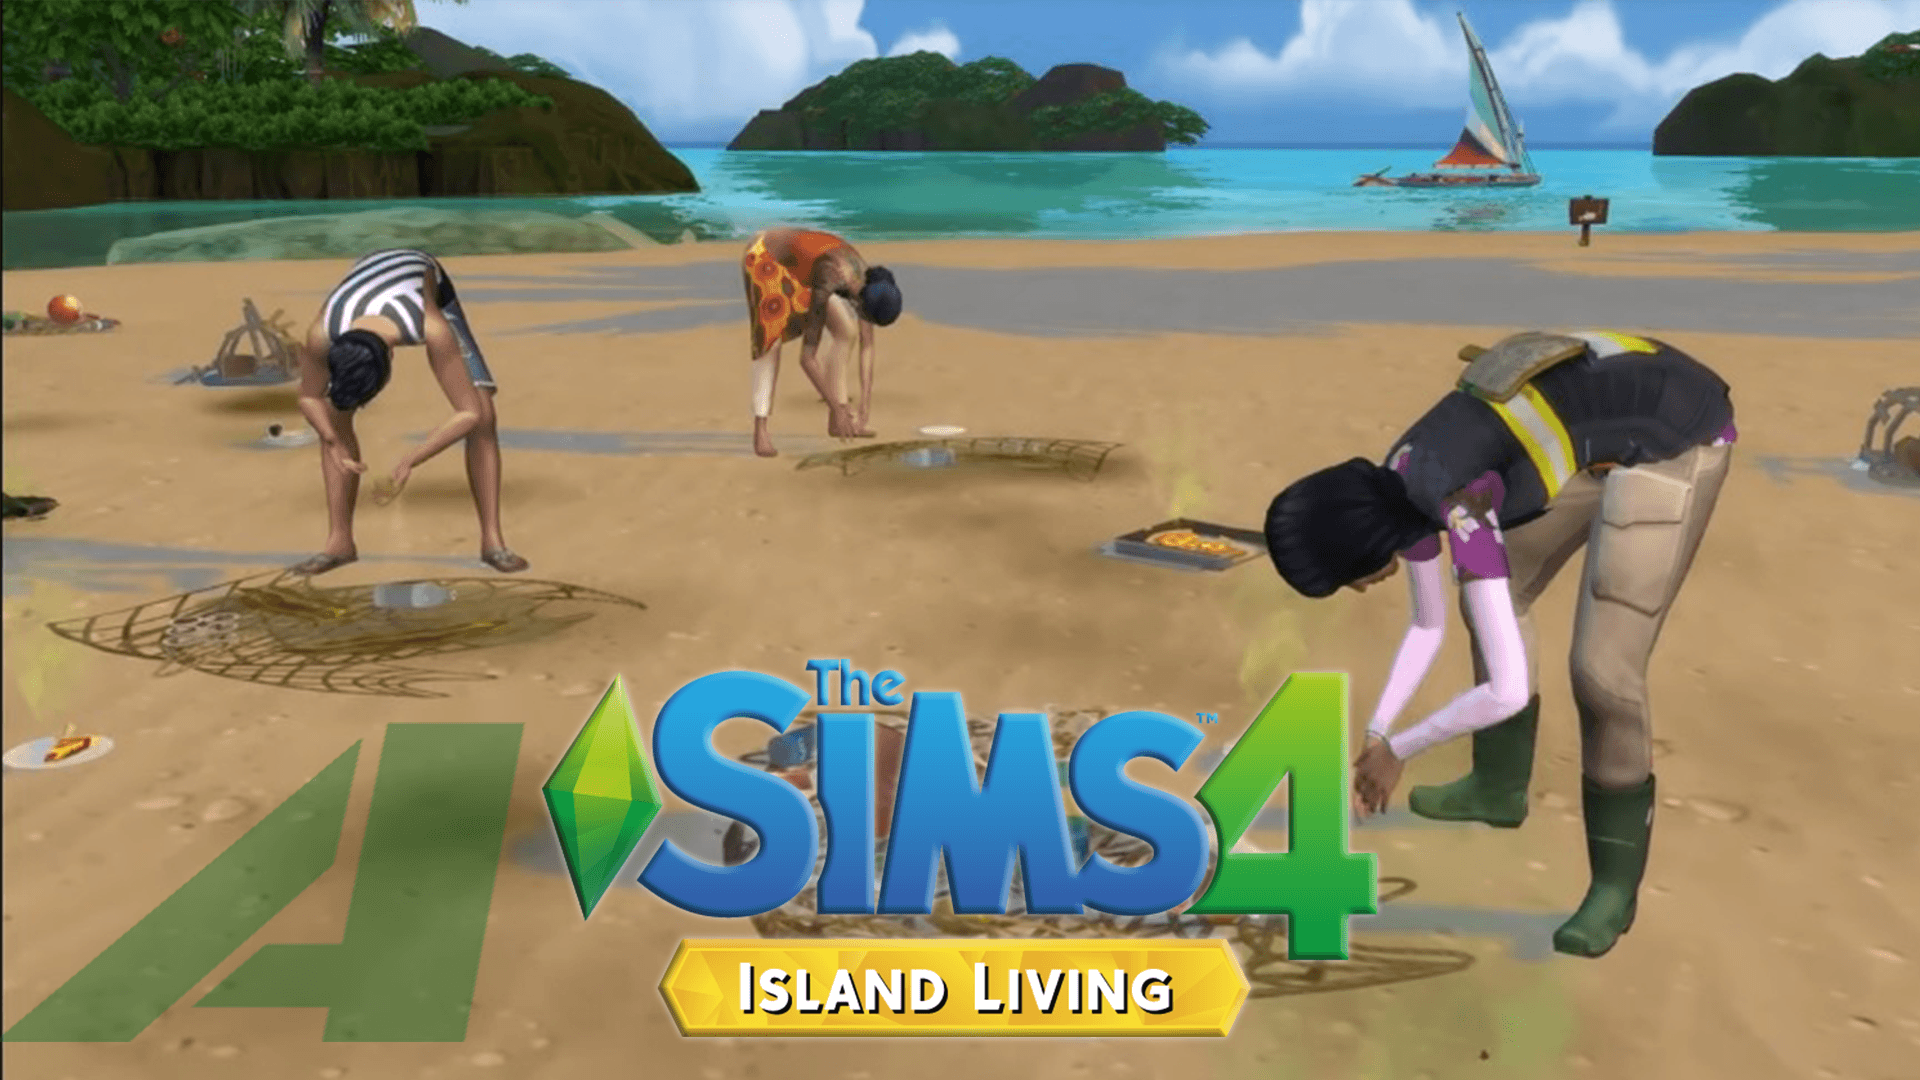 The Sims 4 Island Living All in One Customizable 1 52 100 1020 Multi